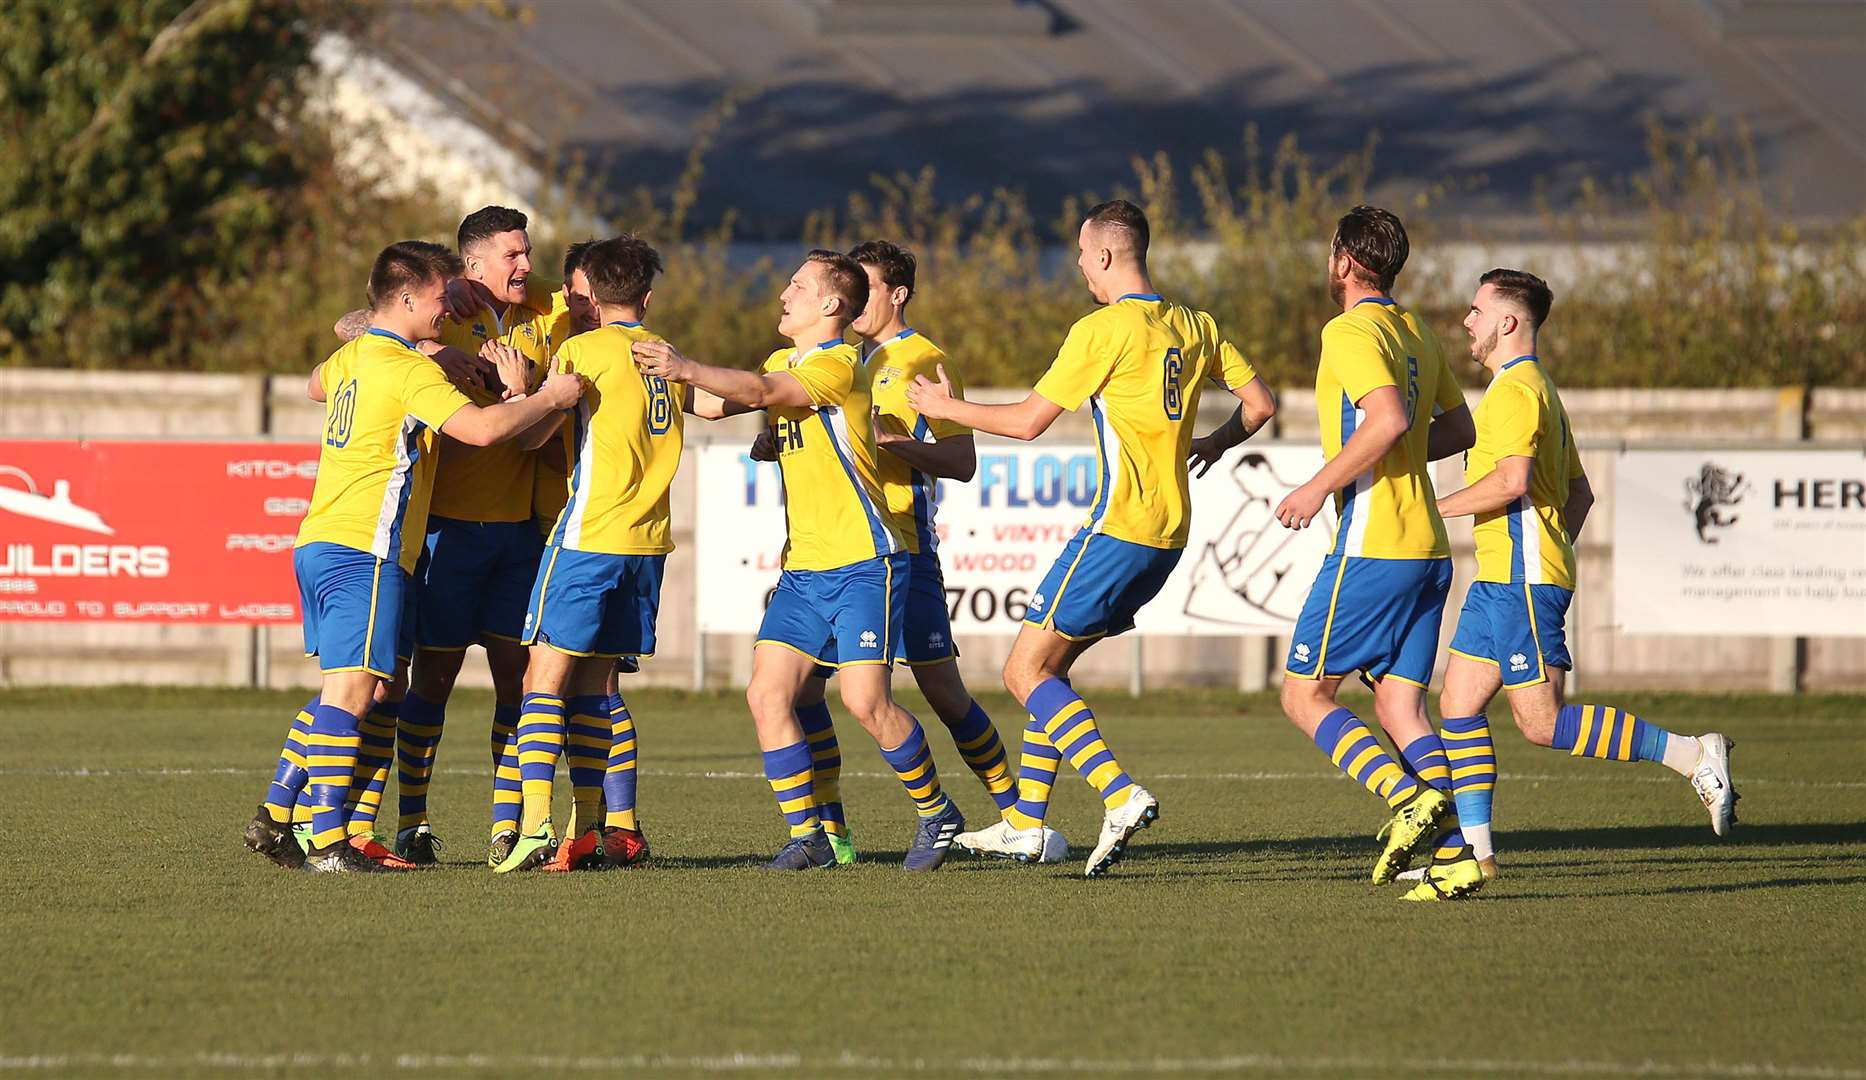 Haverhill Rovers v Newmarket Town - Newmarket celebrate their first goal after only a few seconds of the game..Pic - Richard Marsham. (5187126)